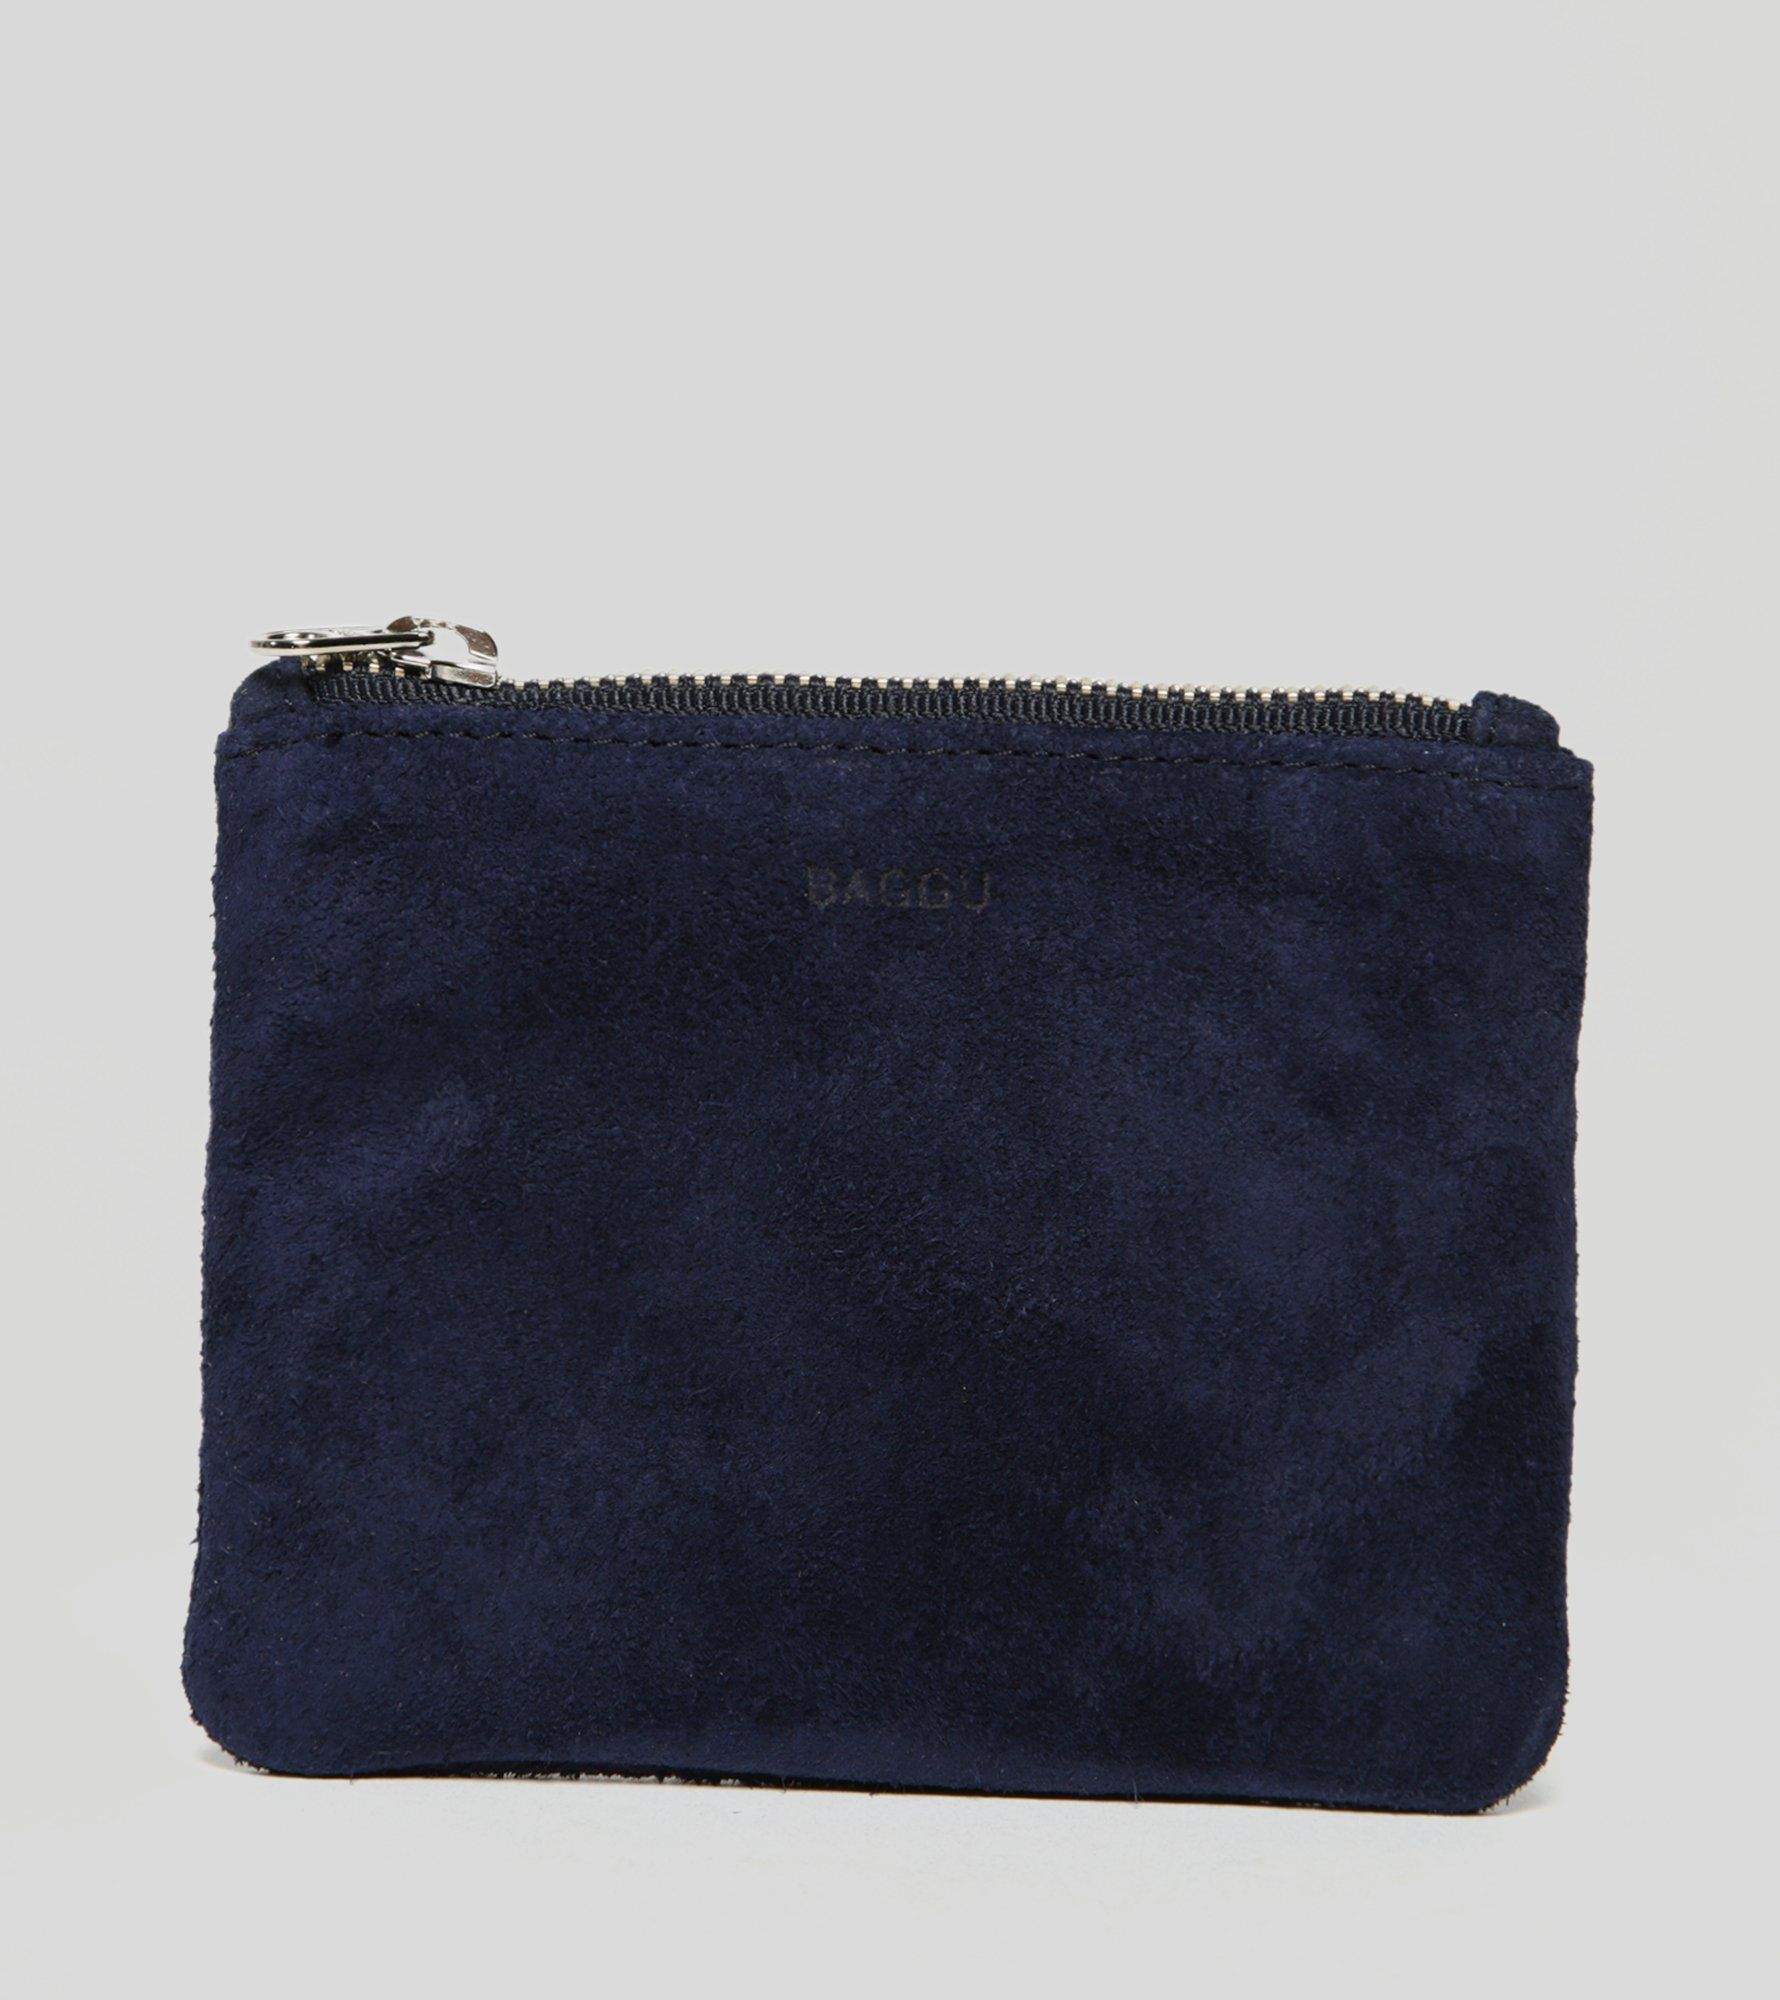 BAGGU Small Leather Pouch